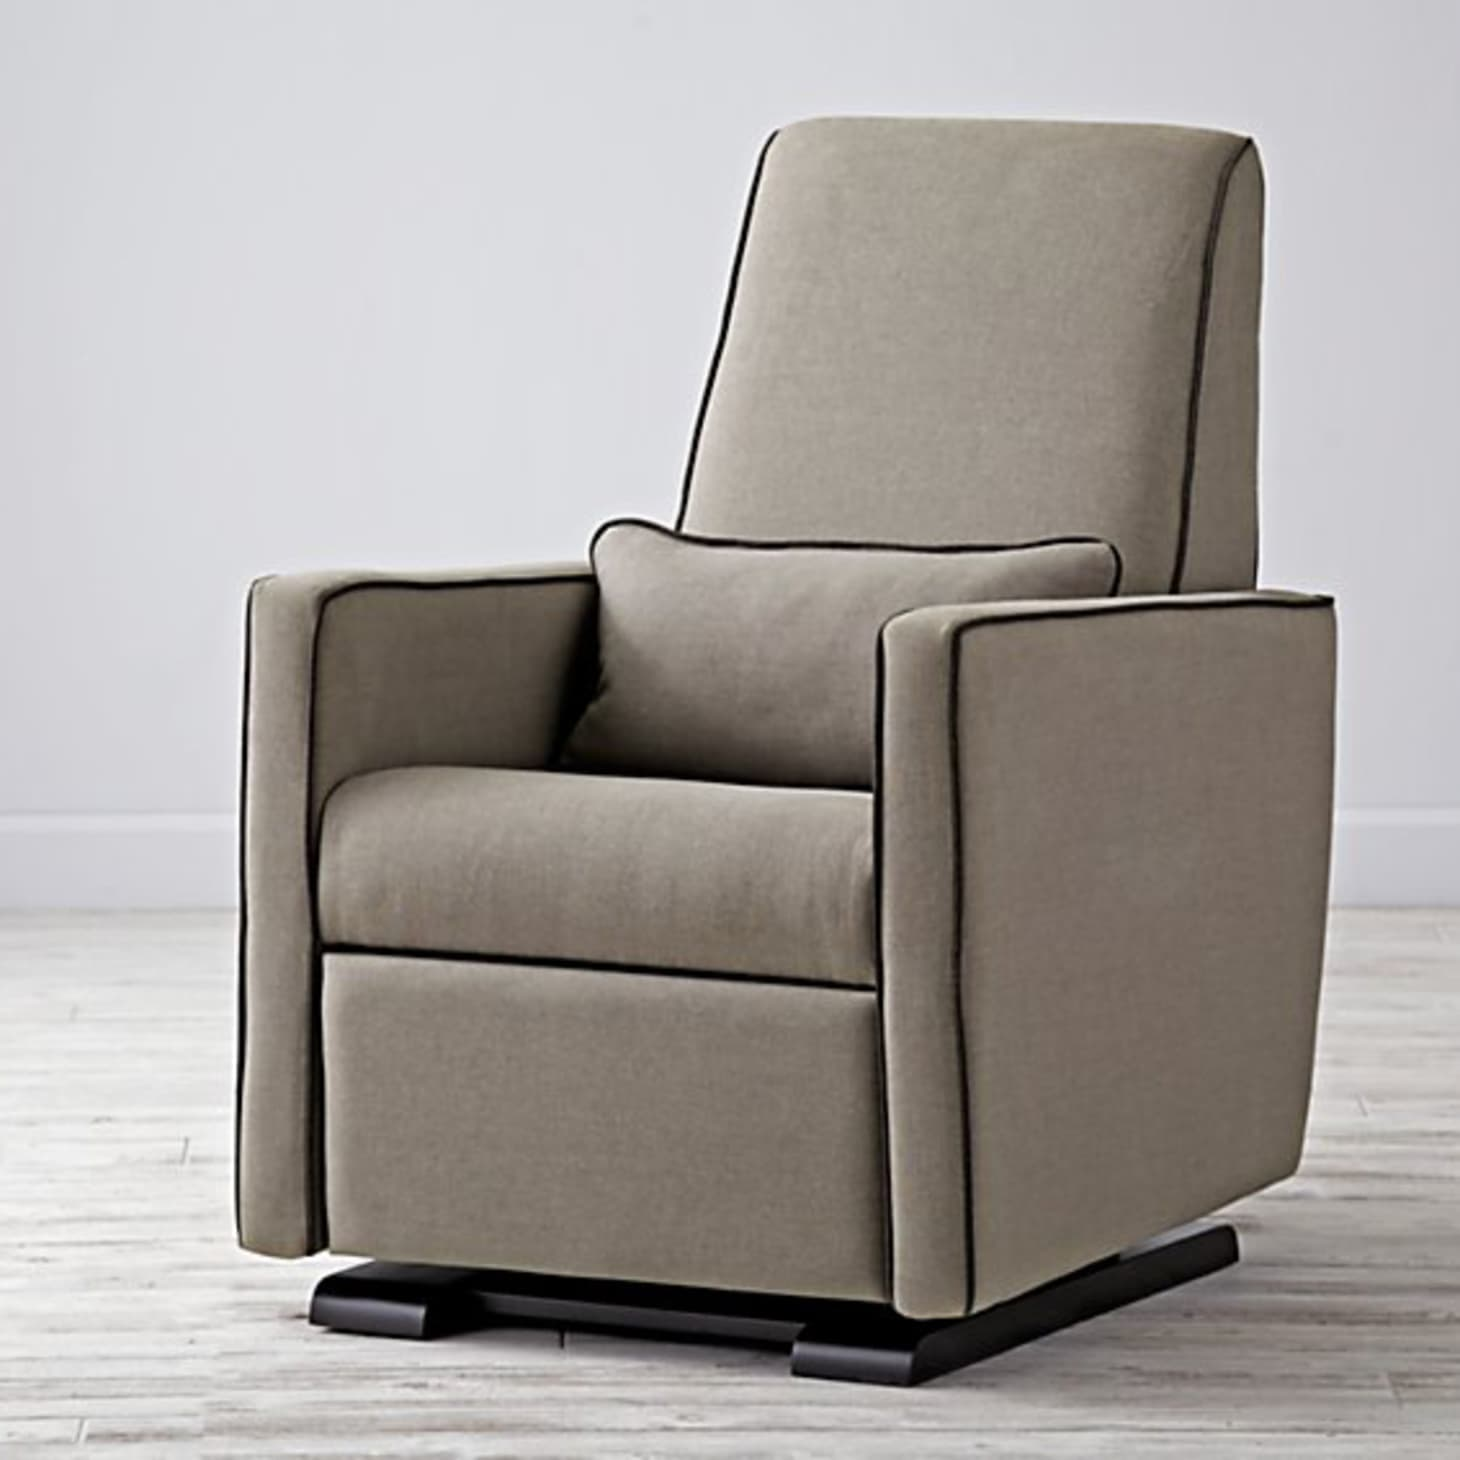 Incredible Attractive Modern Recliner Chairs Apartment Therapy Lamtechconsult Wood Chair Design Ideas Lamtechconsultcom